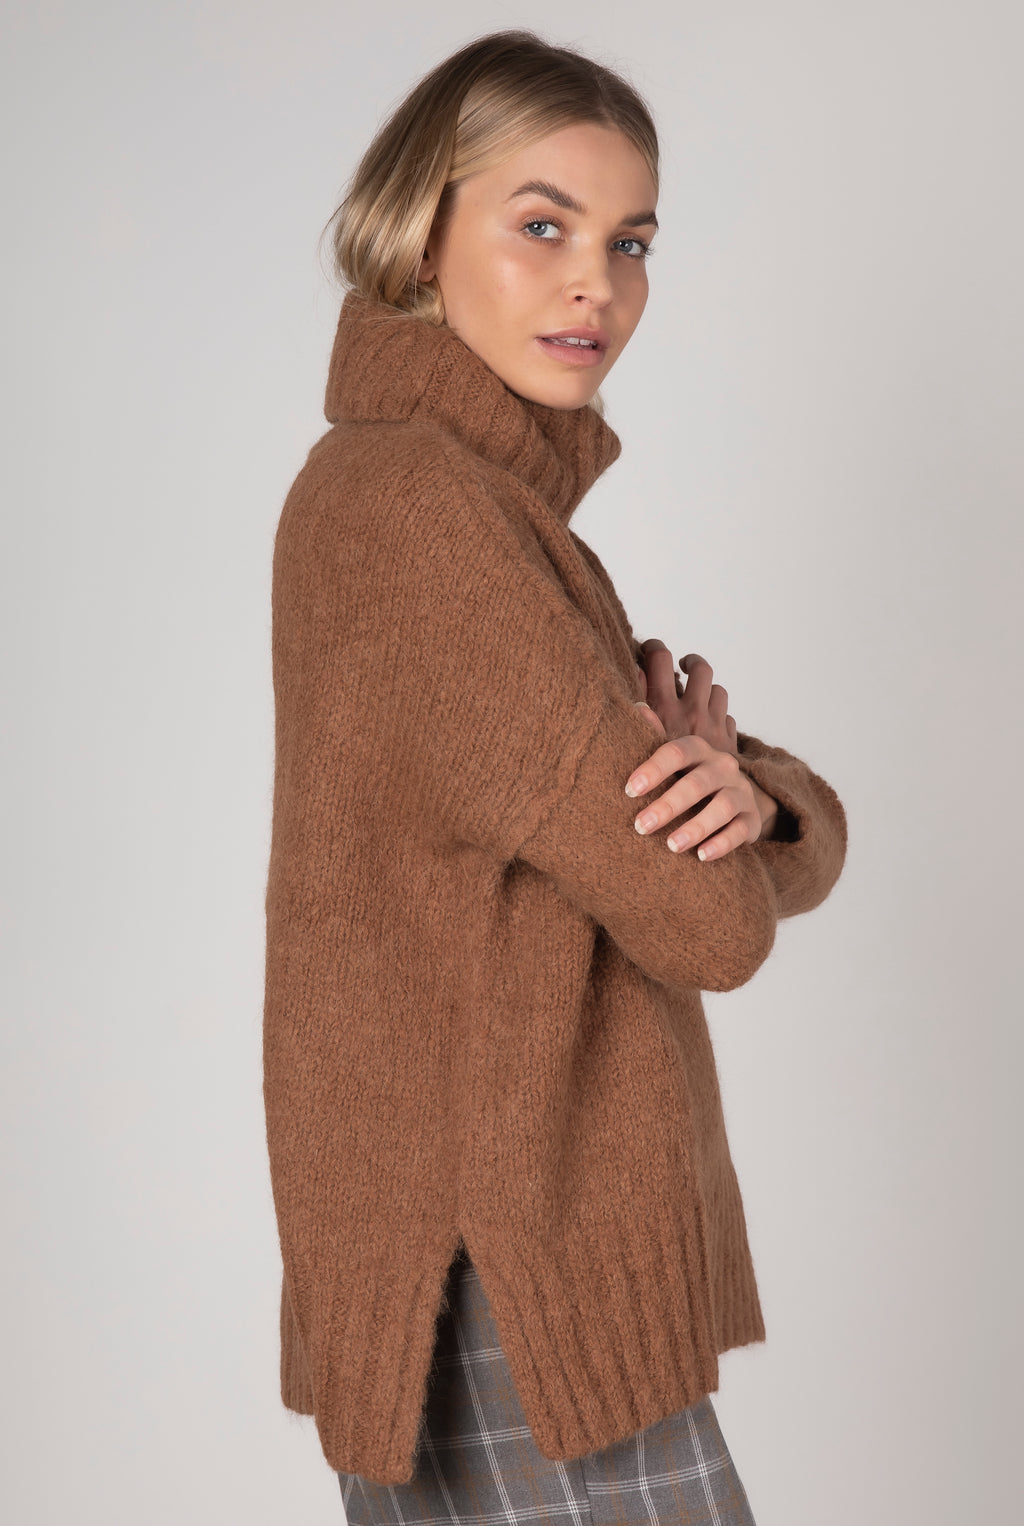 Zaket & Plover Comfort Roll Neck Knit - Coffee